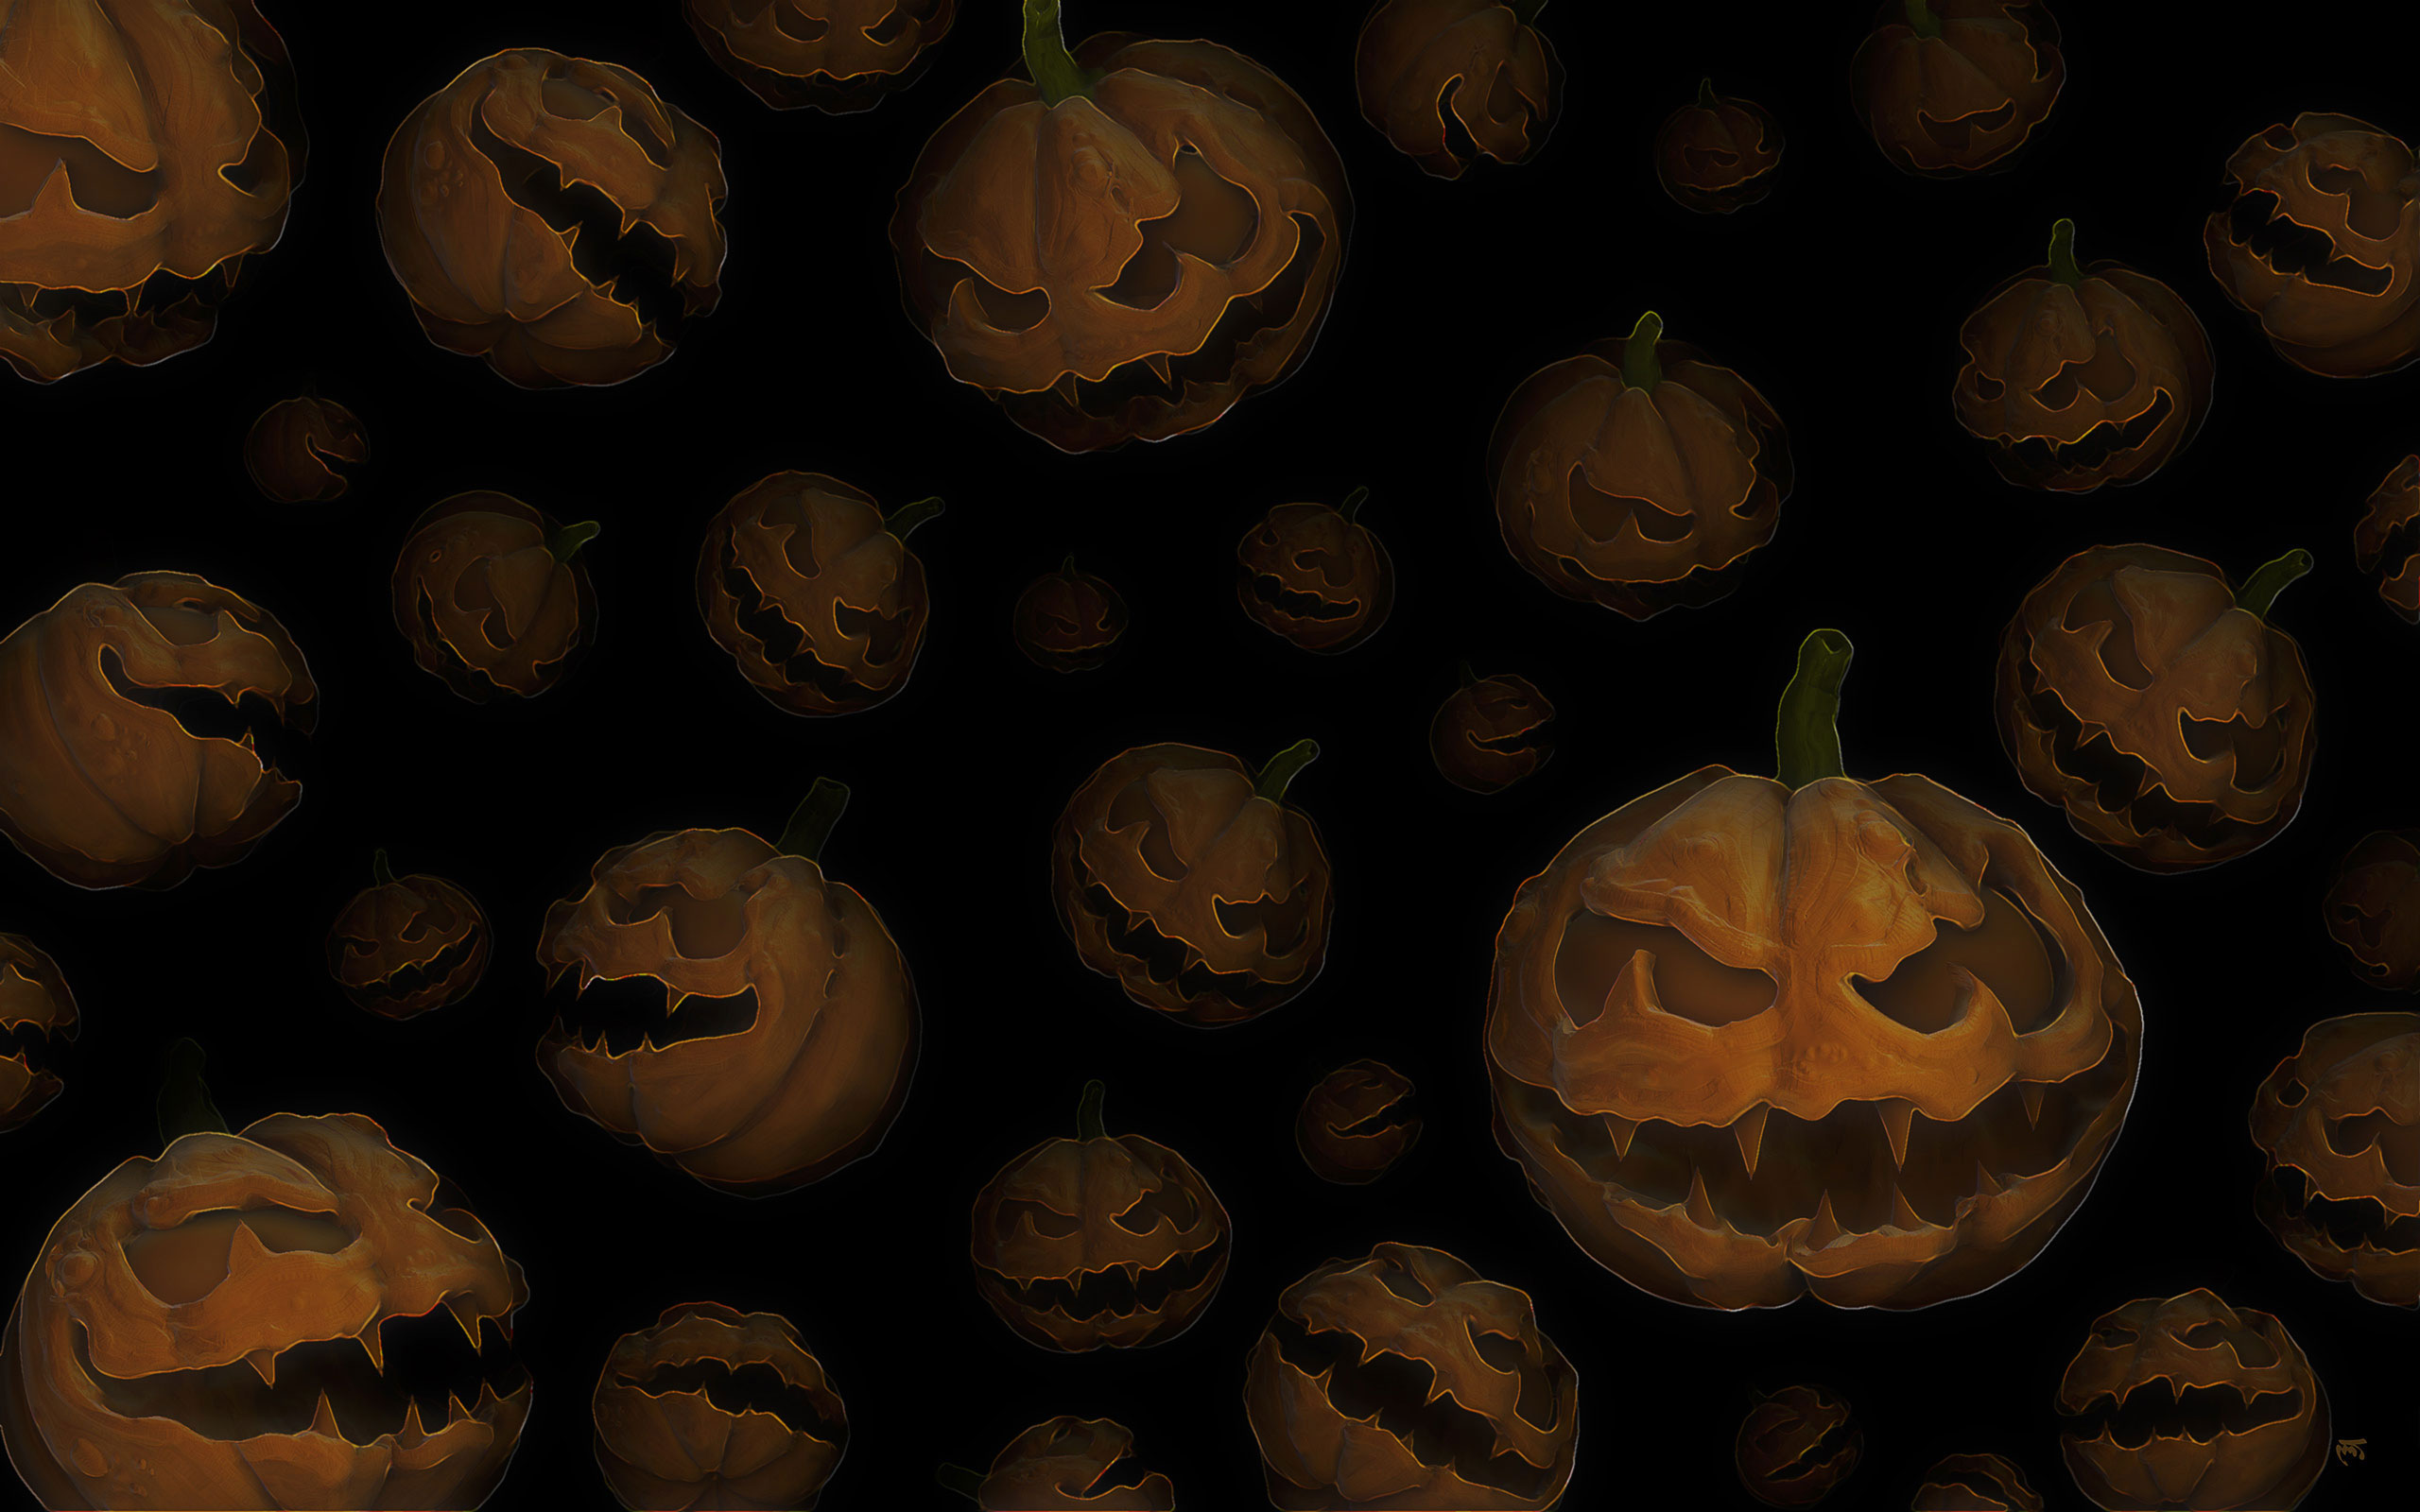 halloween website background pumpkins 2560 x 1600